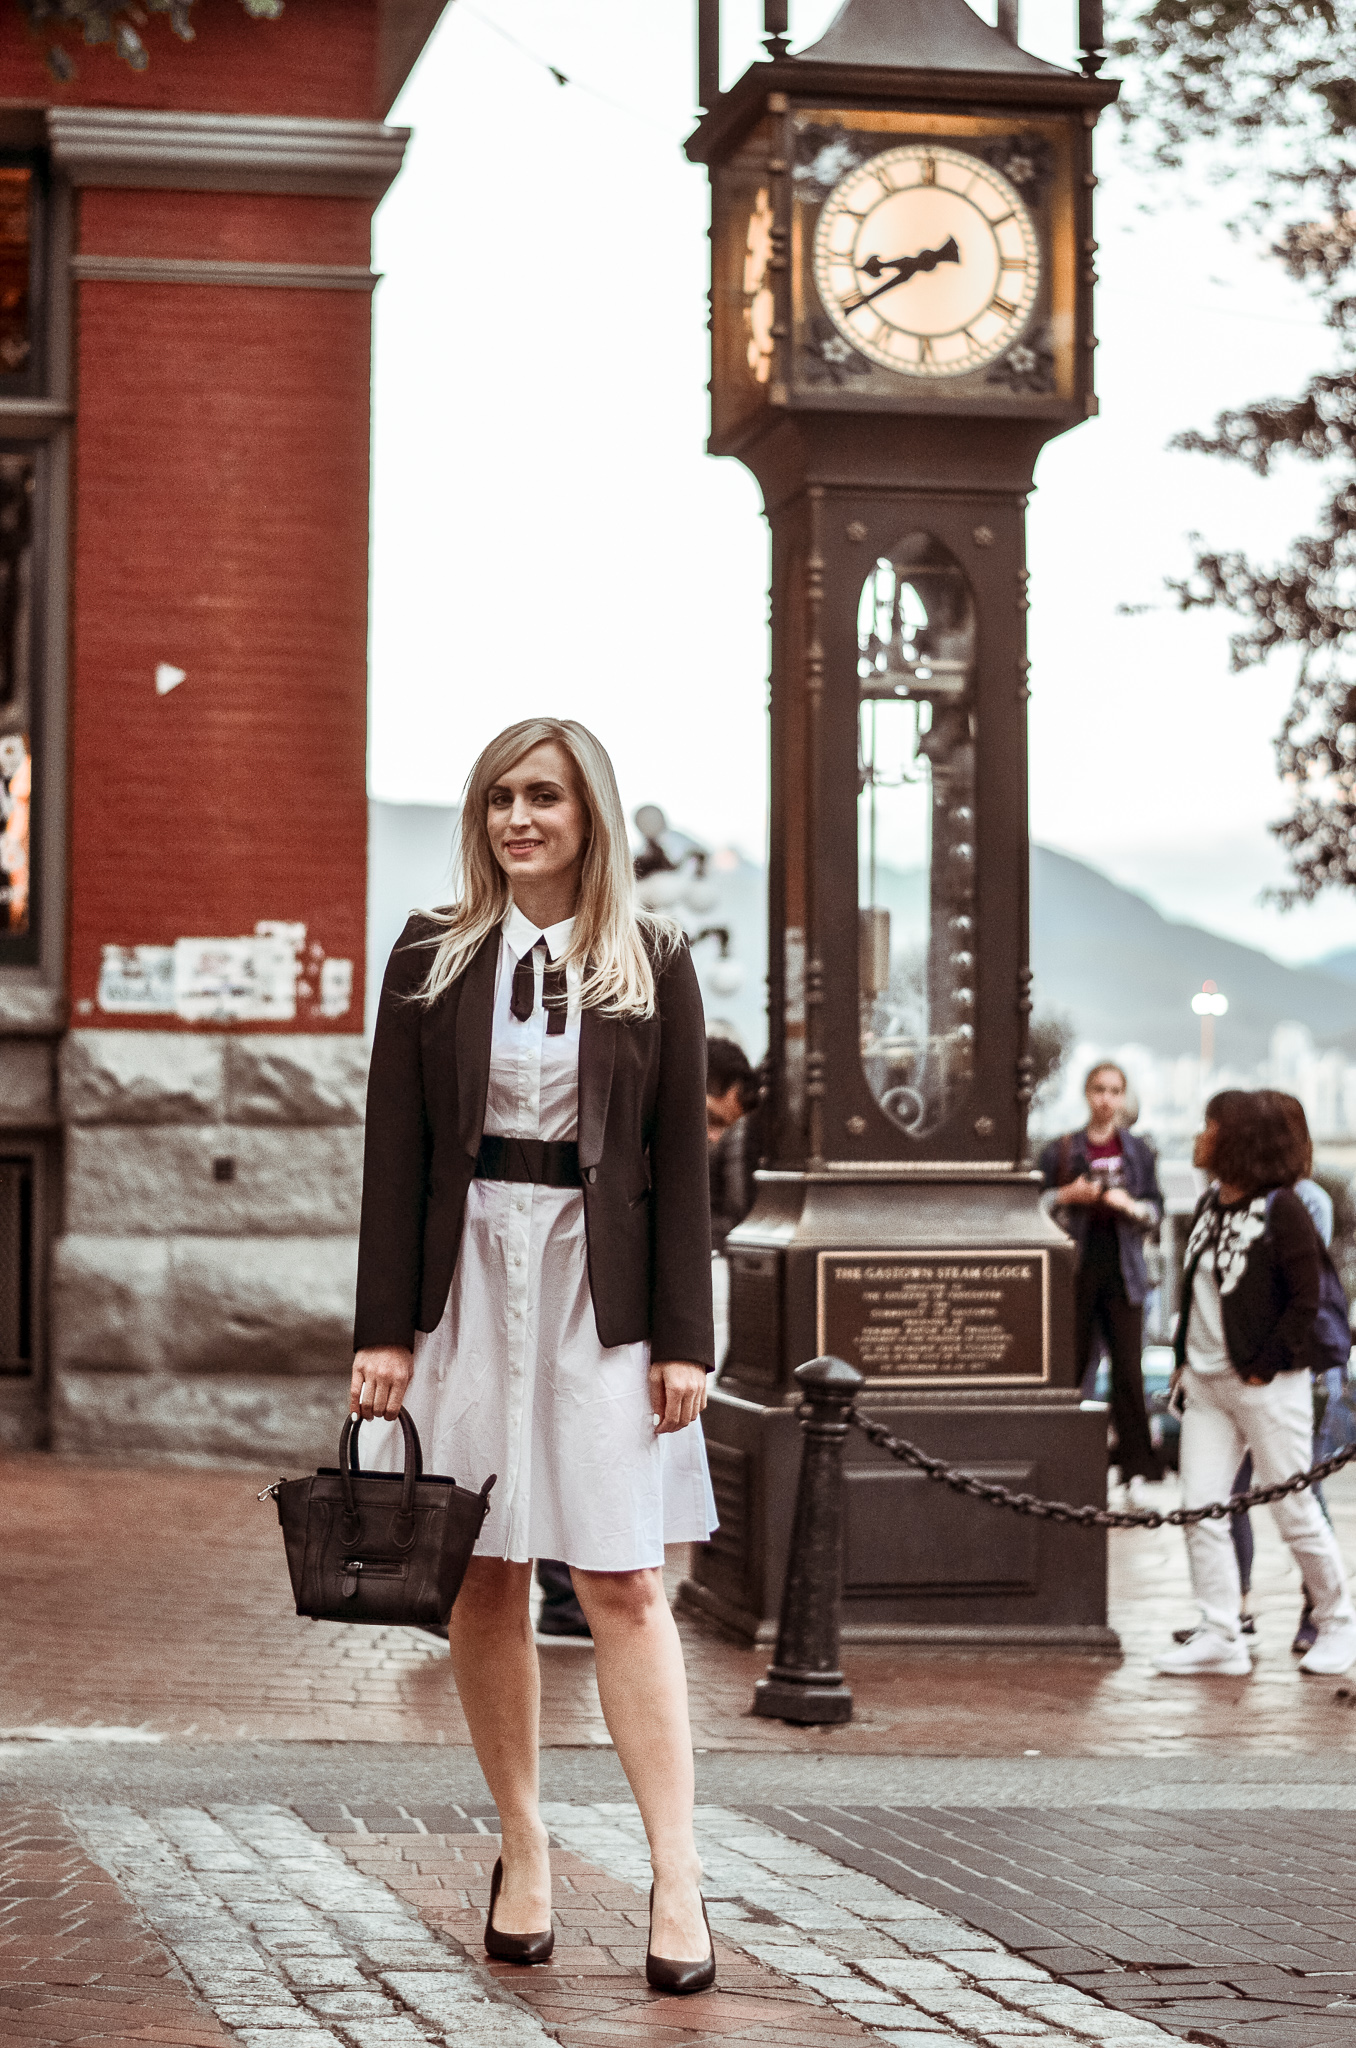 legallee blonde fashion blogger standing by Vancouver Gastown steam clock in white dress with black blazer